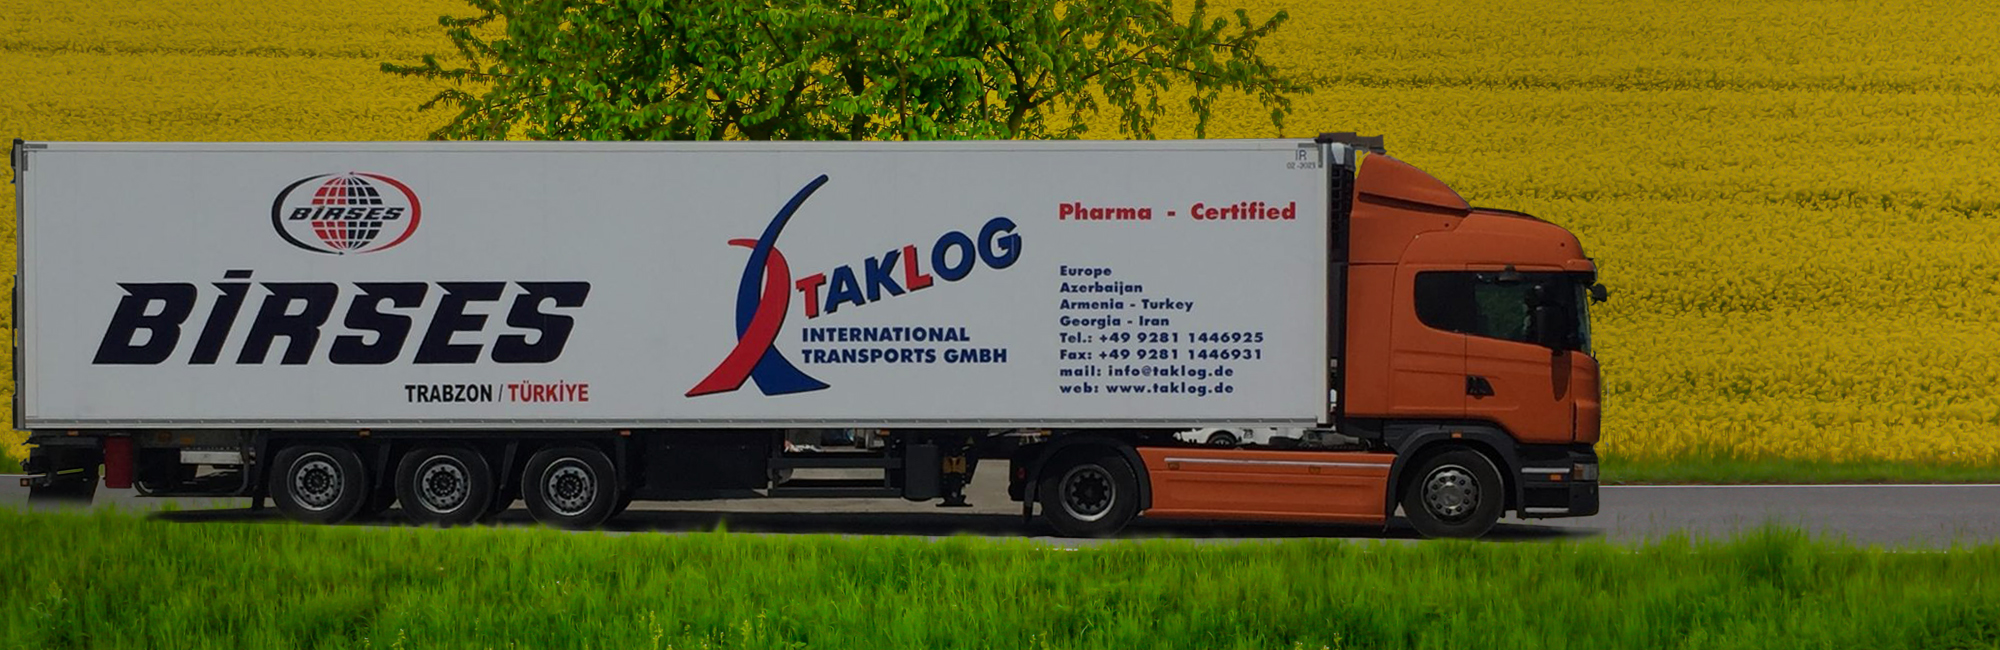 TAKLOG INTERNATIONAL TRANSPORTS GMBH